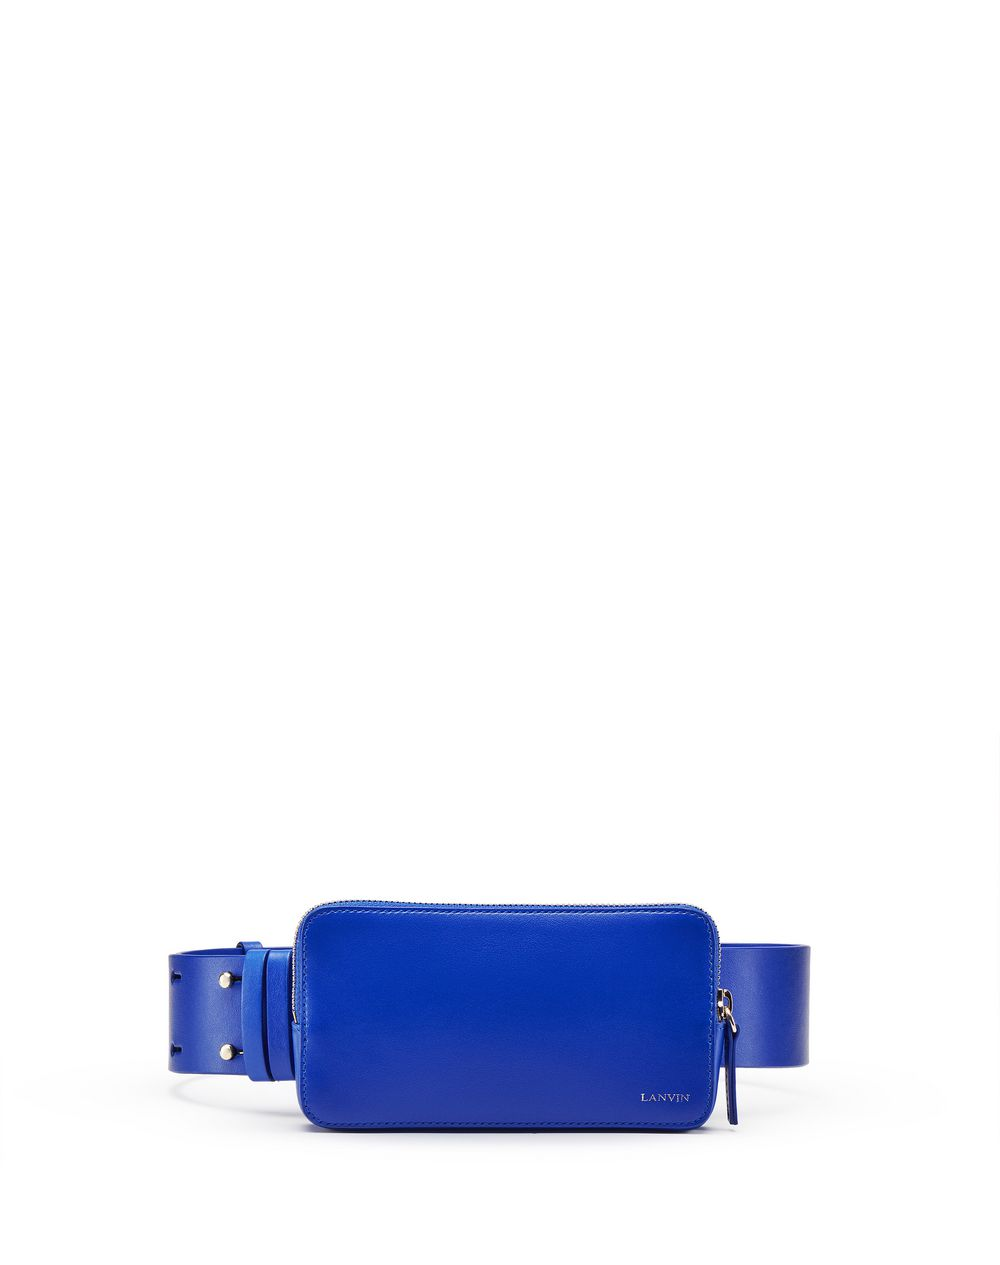 ELECTRIC BLUE PIXEL-IT BAG - Lanvin